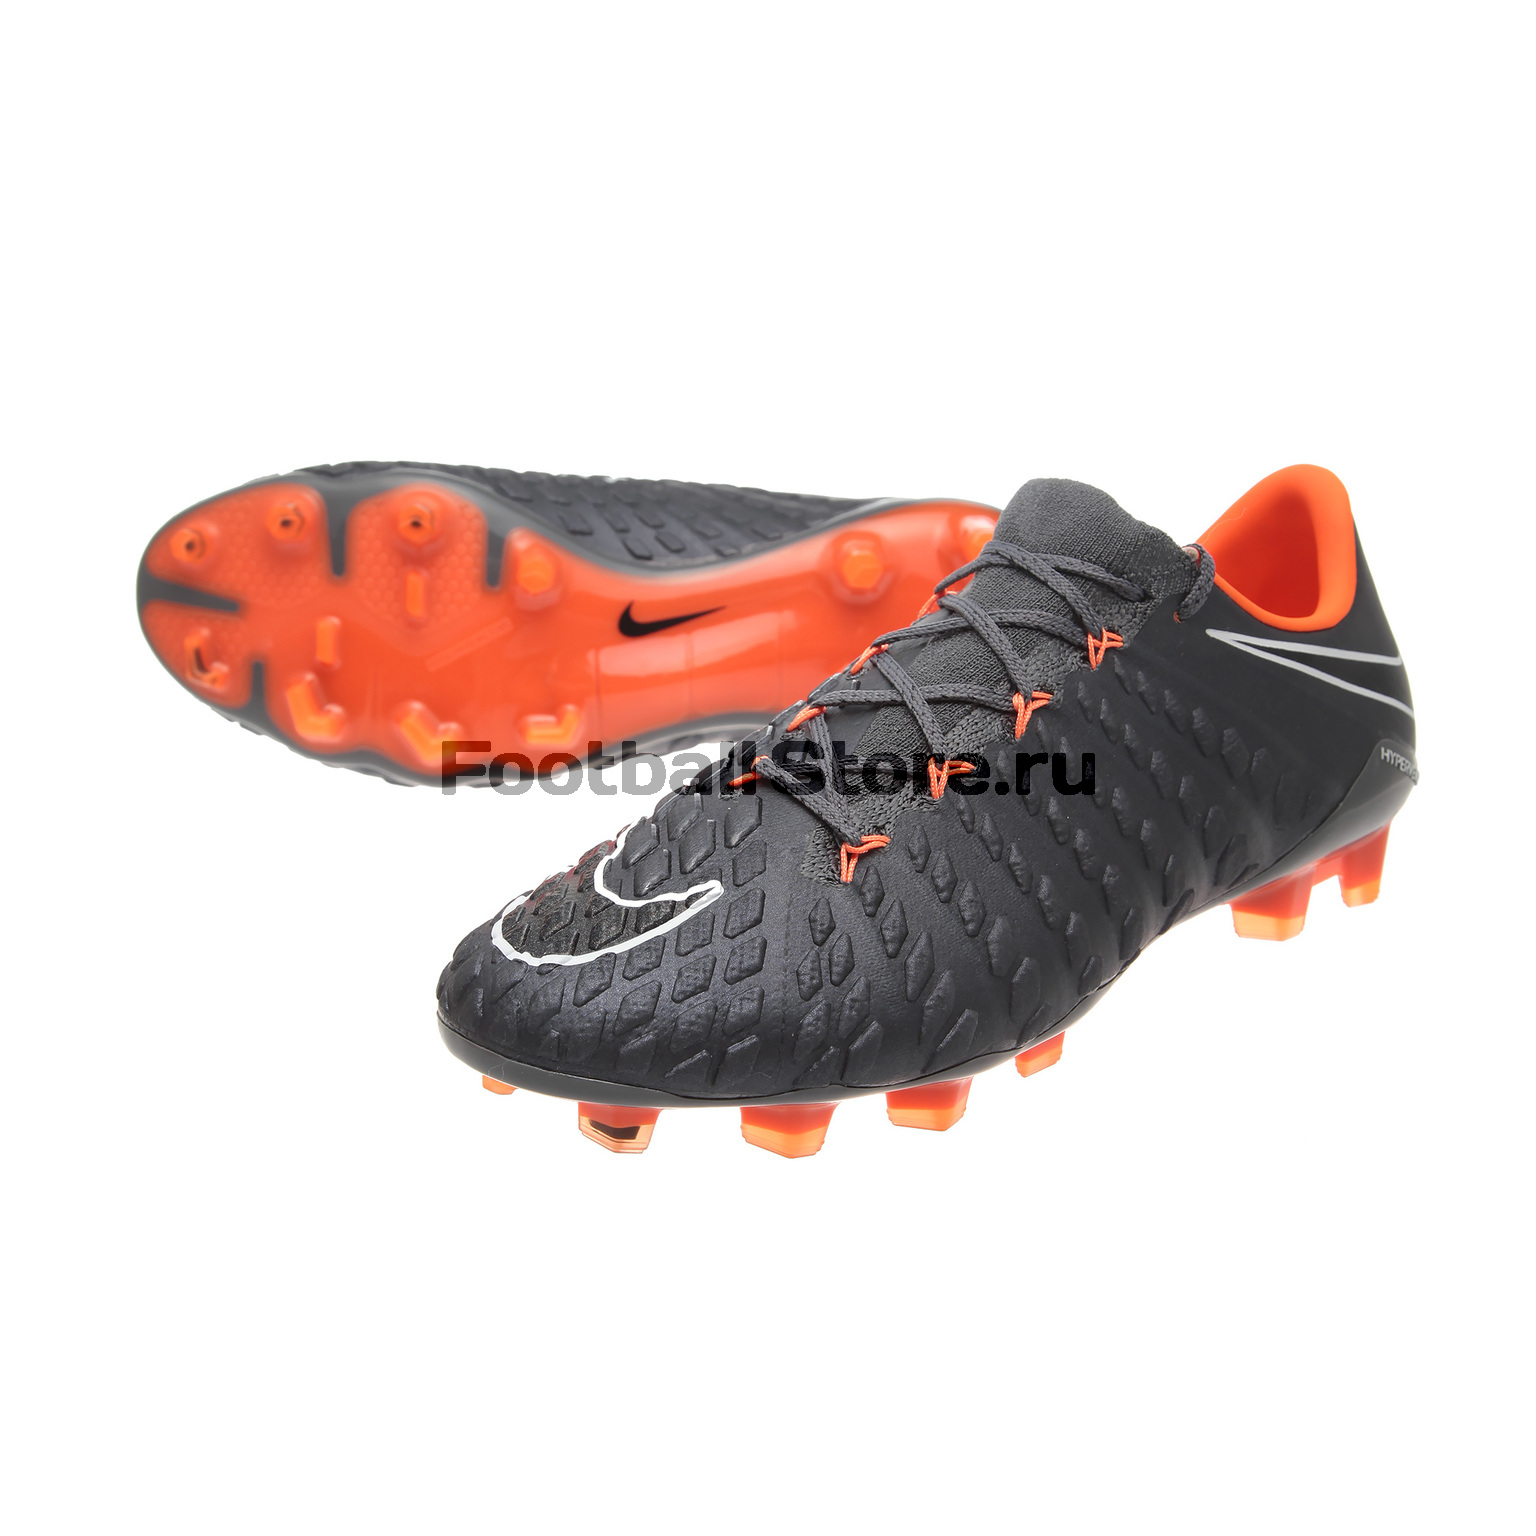 Бутсы Nike Phantom 3 Elite FG AH7273-081 детские бутсы nike бутсы nike jr phantom 3 elite df fg ah7292 081